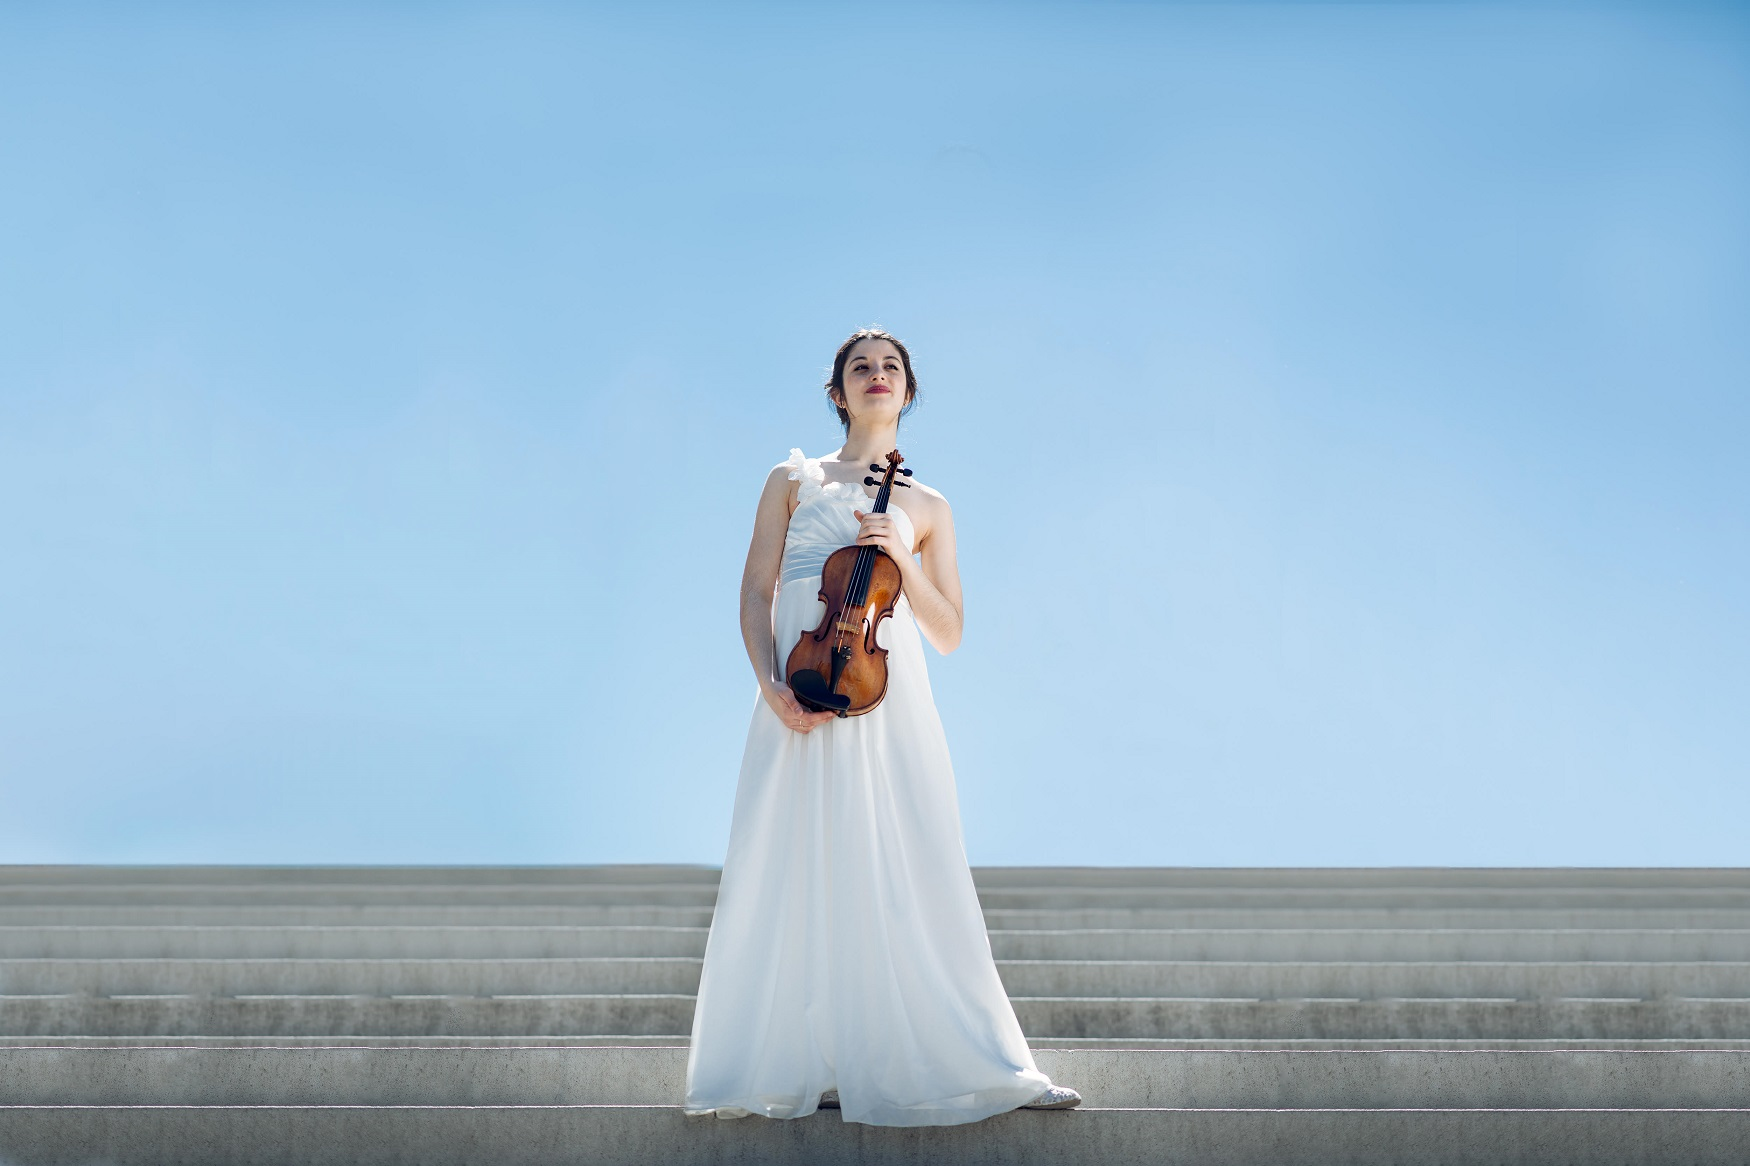 María Dueñas Fernández professional violinist classical music